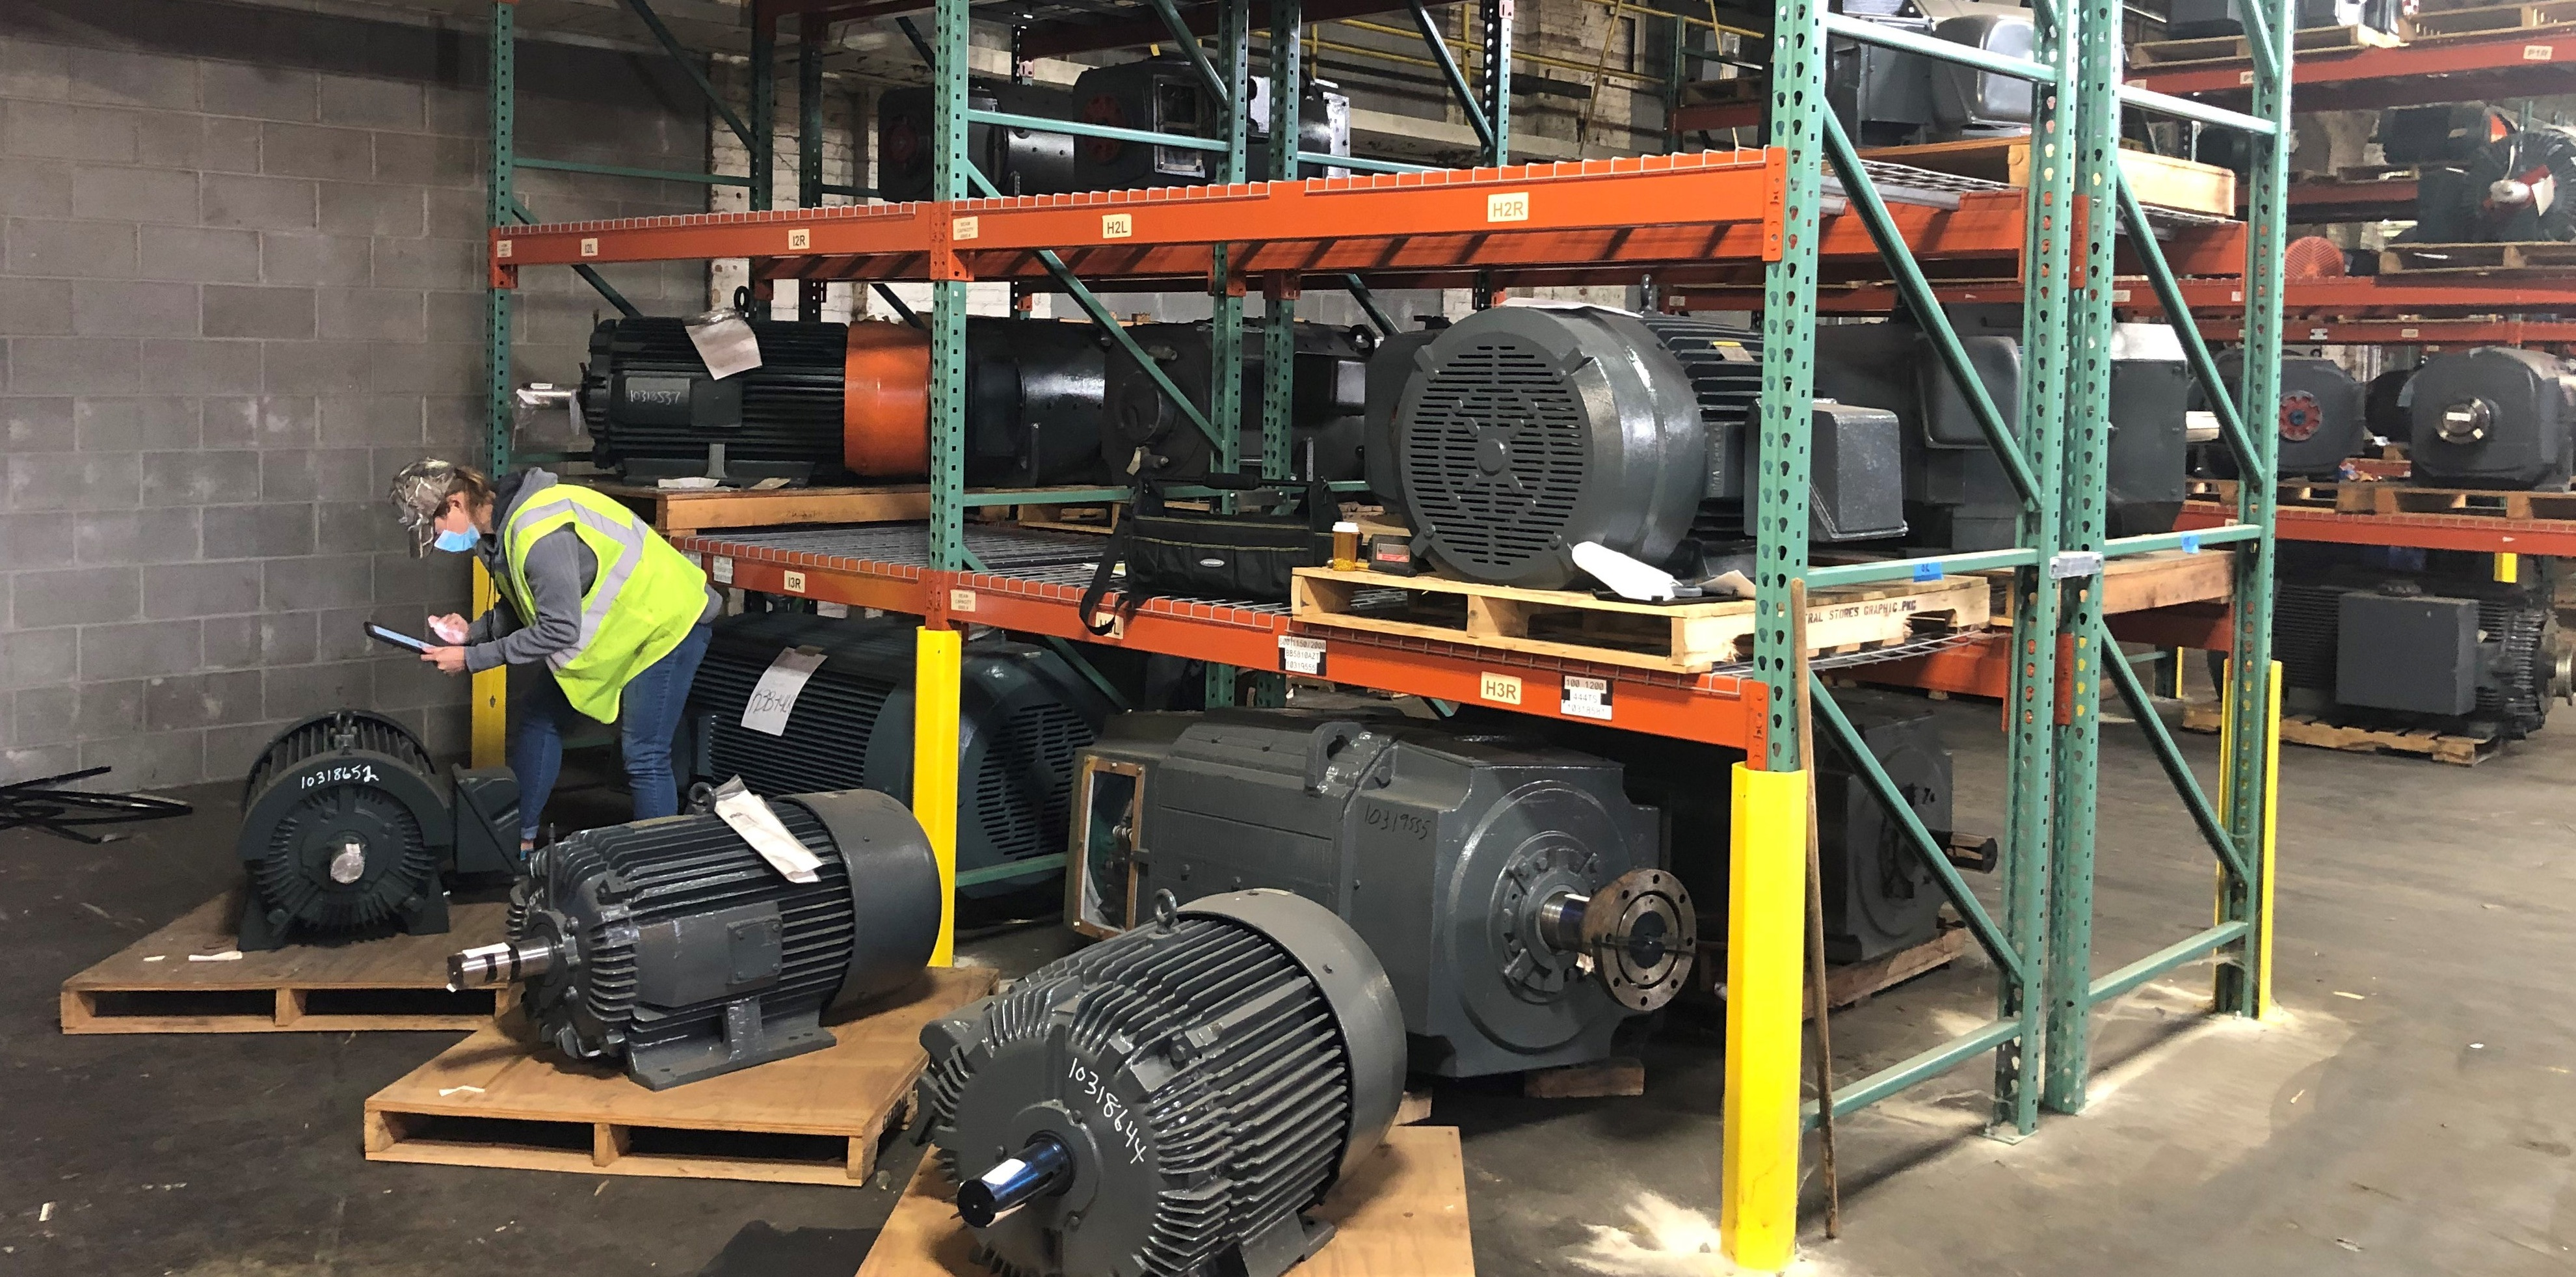 HECO-equipment and identification of electric motors-02-21-2021